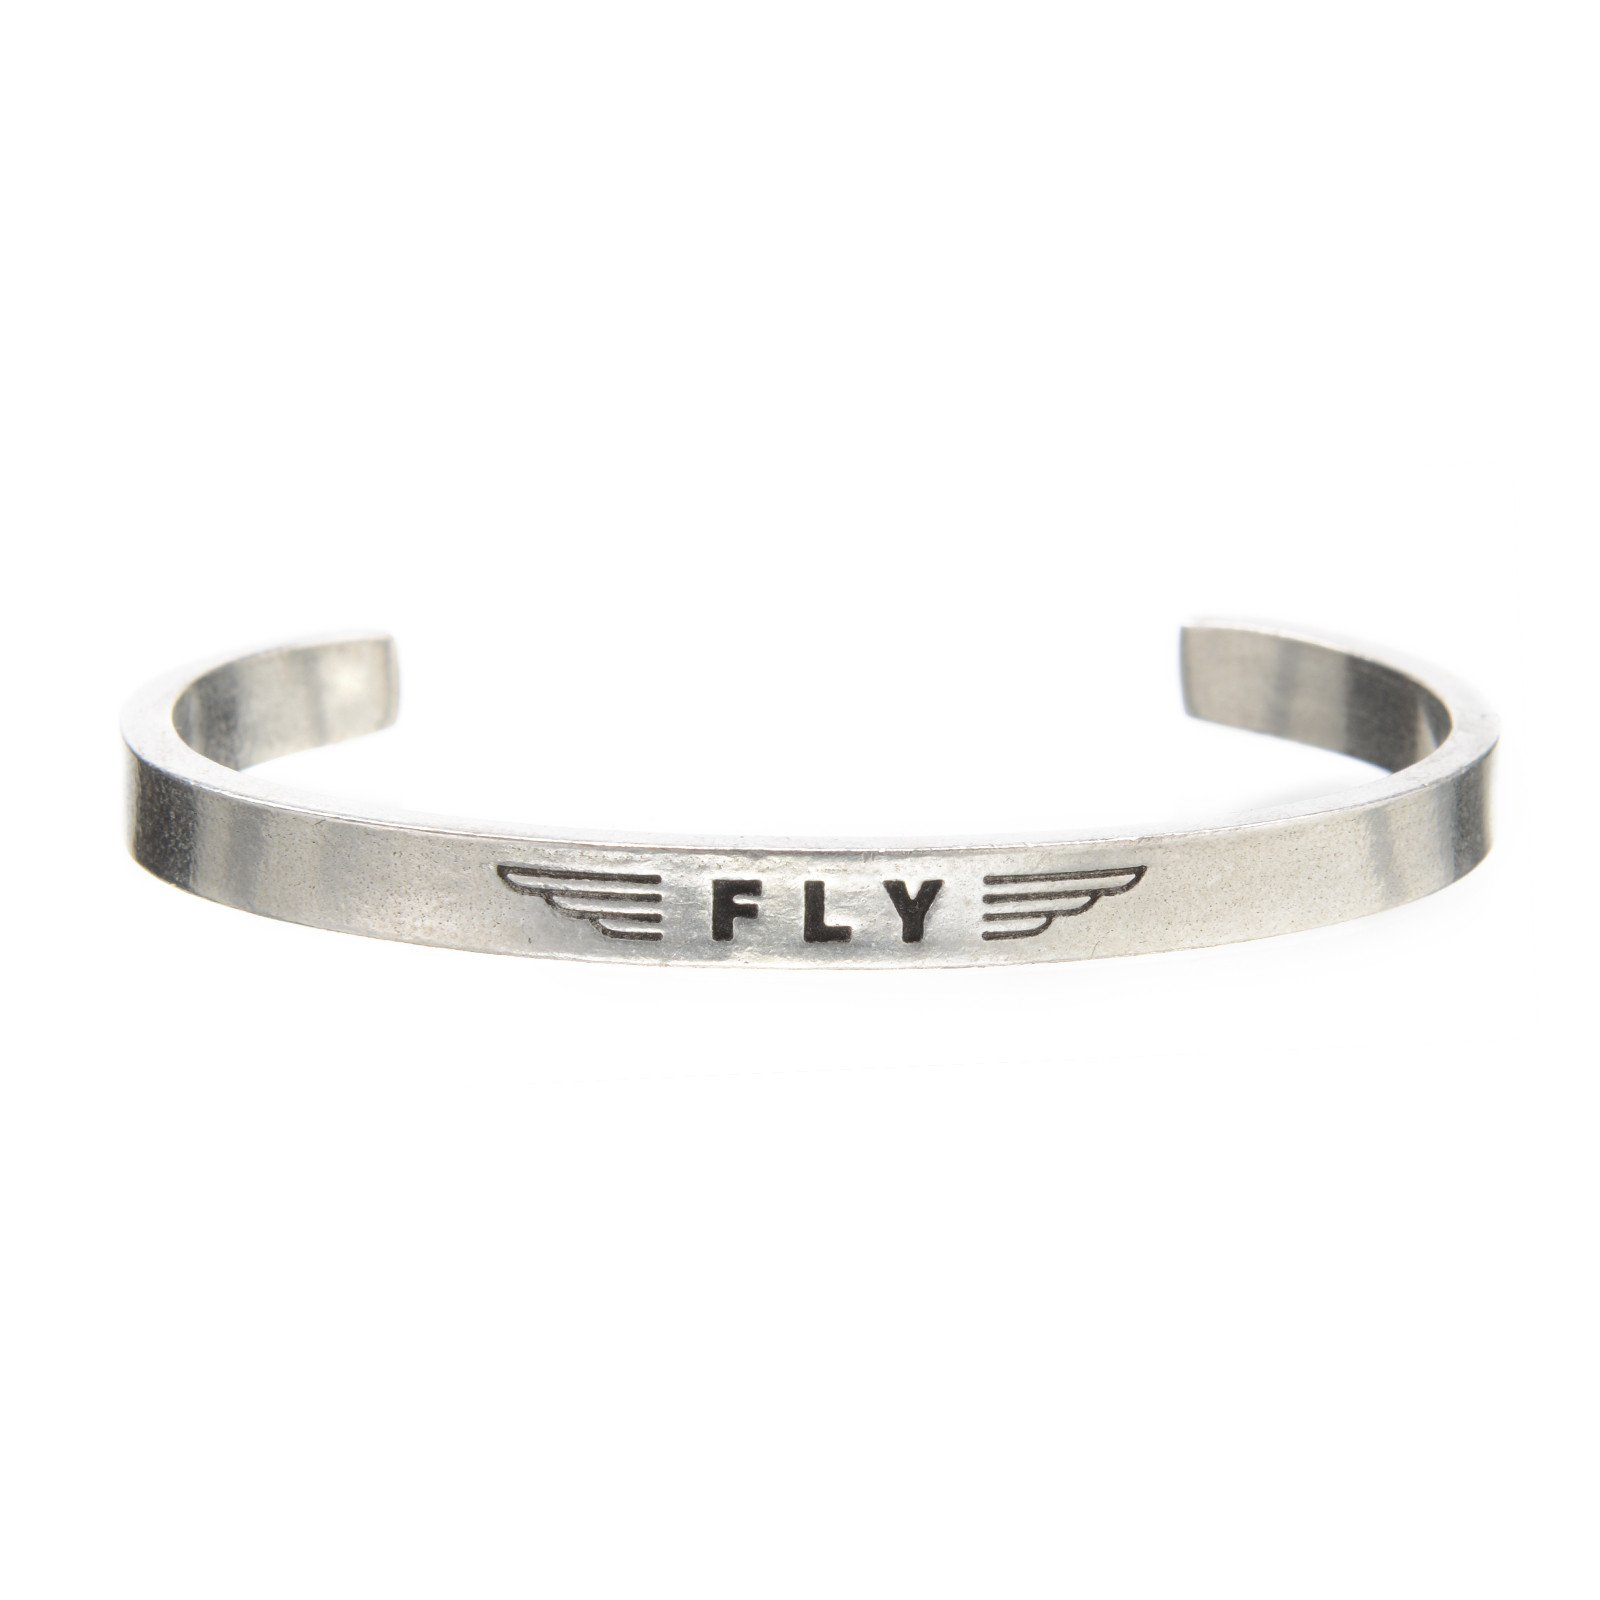 FLY (INSIDE - FIRST LOVE YOURSELF) QUOTABLE CUFF BRACELET